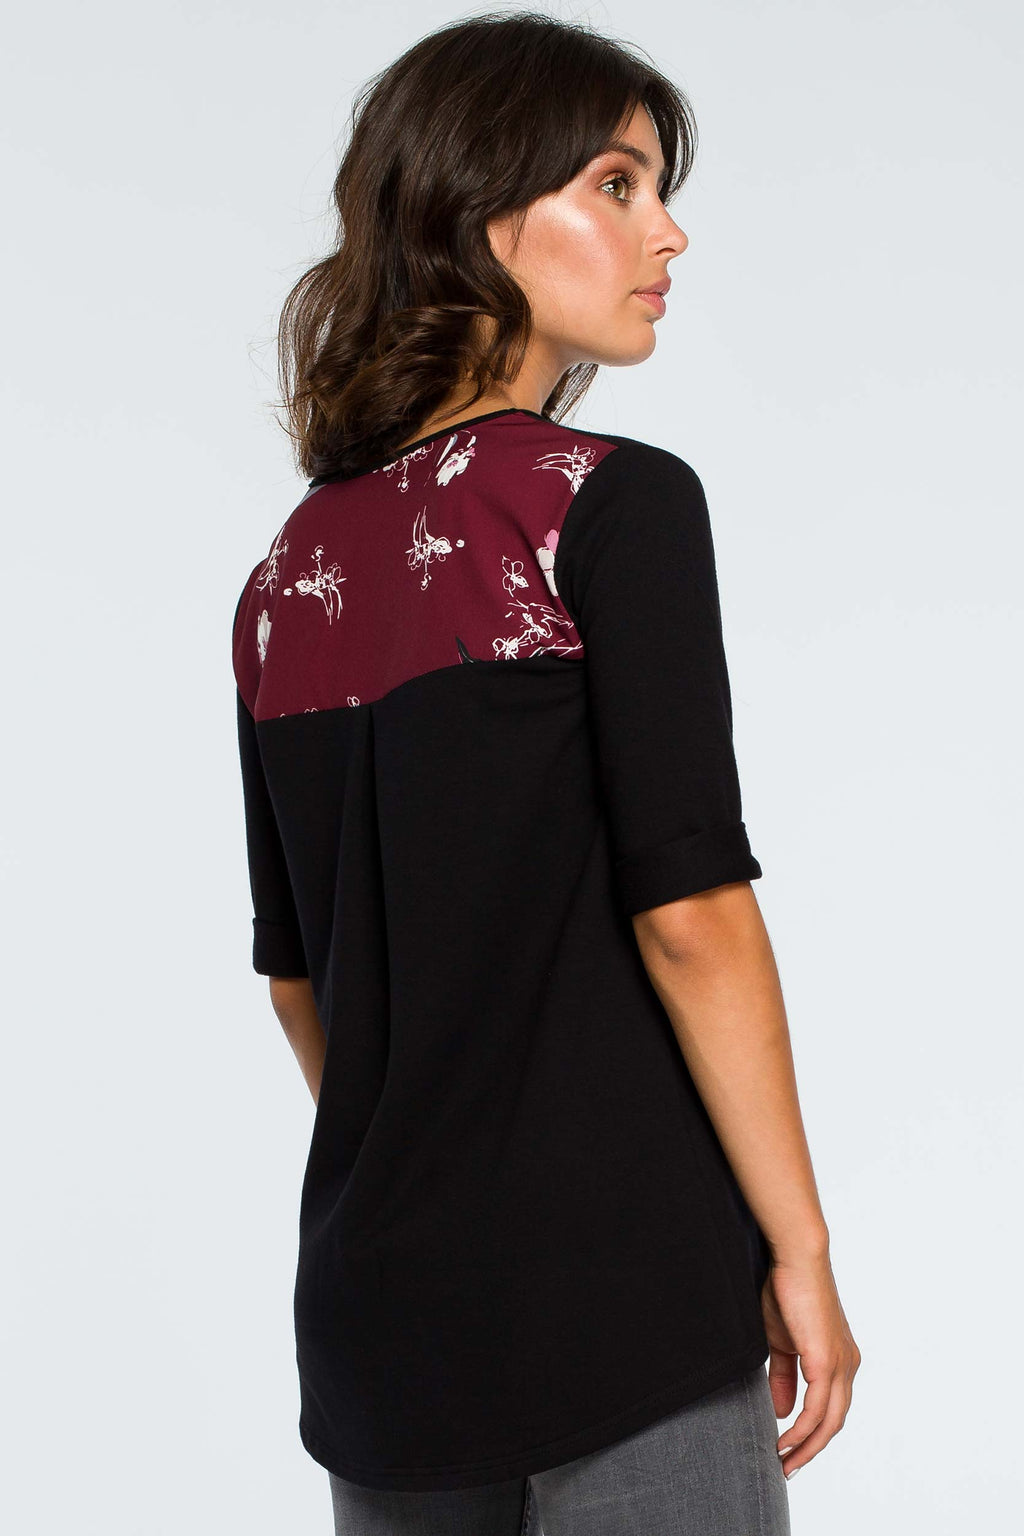 Black Loose Top With Floral Details - So Chic Boutique